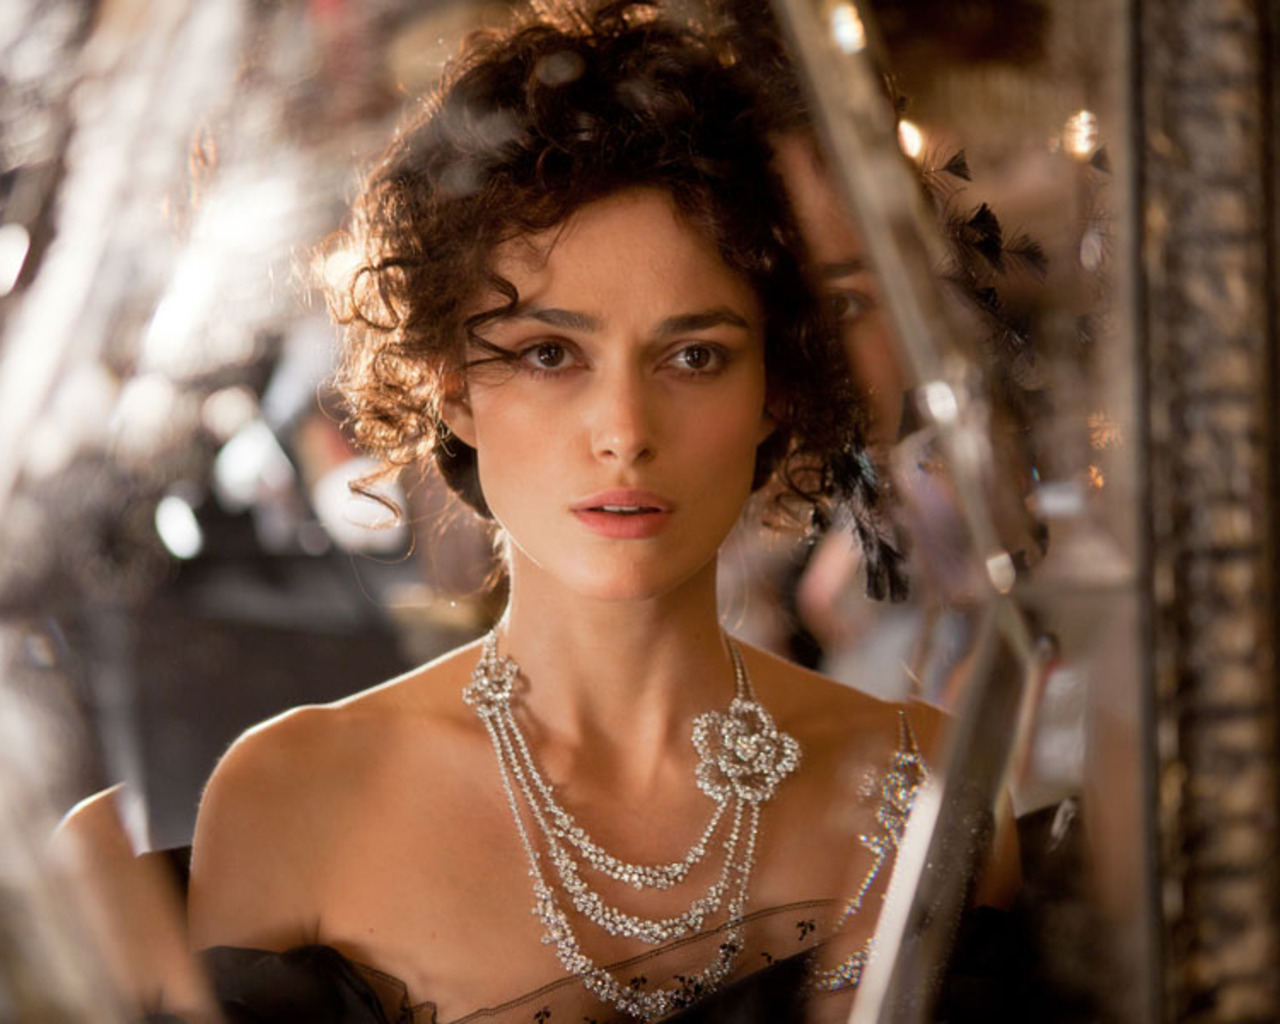 Movie Review: Anna Karenina We had high sartorial expectations for Joe Wright's adaptation of Leo Tolstoy's Anna Karenina. After all, the film had all of the trappings of a fashion masterpiece: billowing ballgowns, dazzling jewelry, voluminous fur, and even a cameo by Cara Delevingne. What came as a pleasant surprise was that what Wright created was more than eye candy, it was nuanced visual storytelling at its finest. Abandoning traditional sets, the he juxtaposed the ritual and fantasy of high Russian society against the realities of the simpler peasant existence by setting the scenes revolving around Anna in a theater that changed to suit the story's needs, alternately evolving from Anna's home to a train station to a ballroom and more. Wright's unique approach to storytelling was further complemented by the superb acting of the movie's stellar cast. Keira Knightley was truly convincing as the Russian socialite-turned-pariah, and our hearts broke over the soul-crushing devotion shown by Anna's dutiful husband as played by Jude Law. Add to all of this the previously downplayed sexual tension, and it is easy to see why this film has us buzzing with excitement. Anna Karenina is a must-see this season for fashion enthusiasts and movie buffs alike.